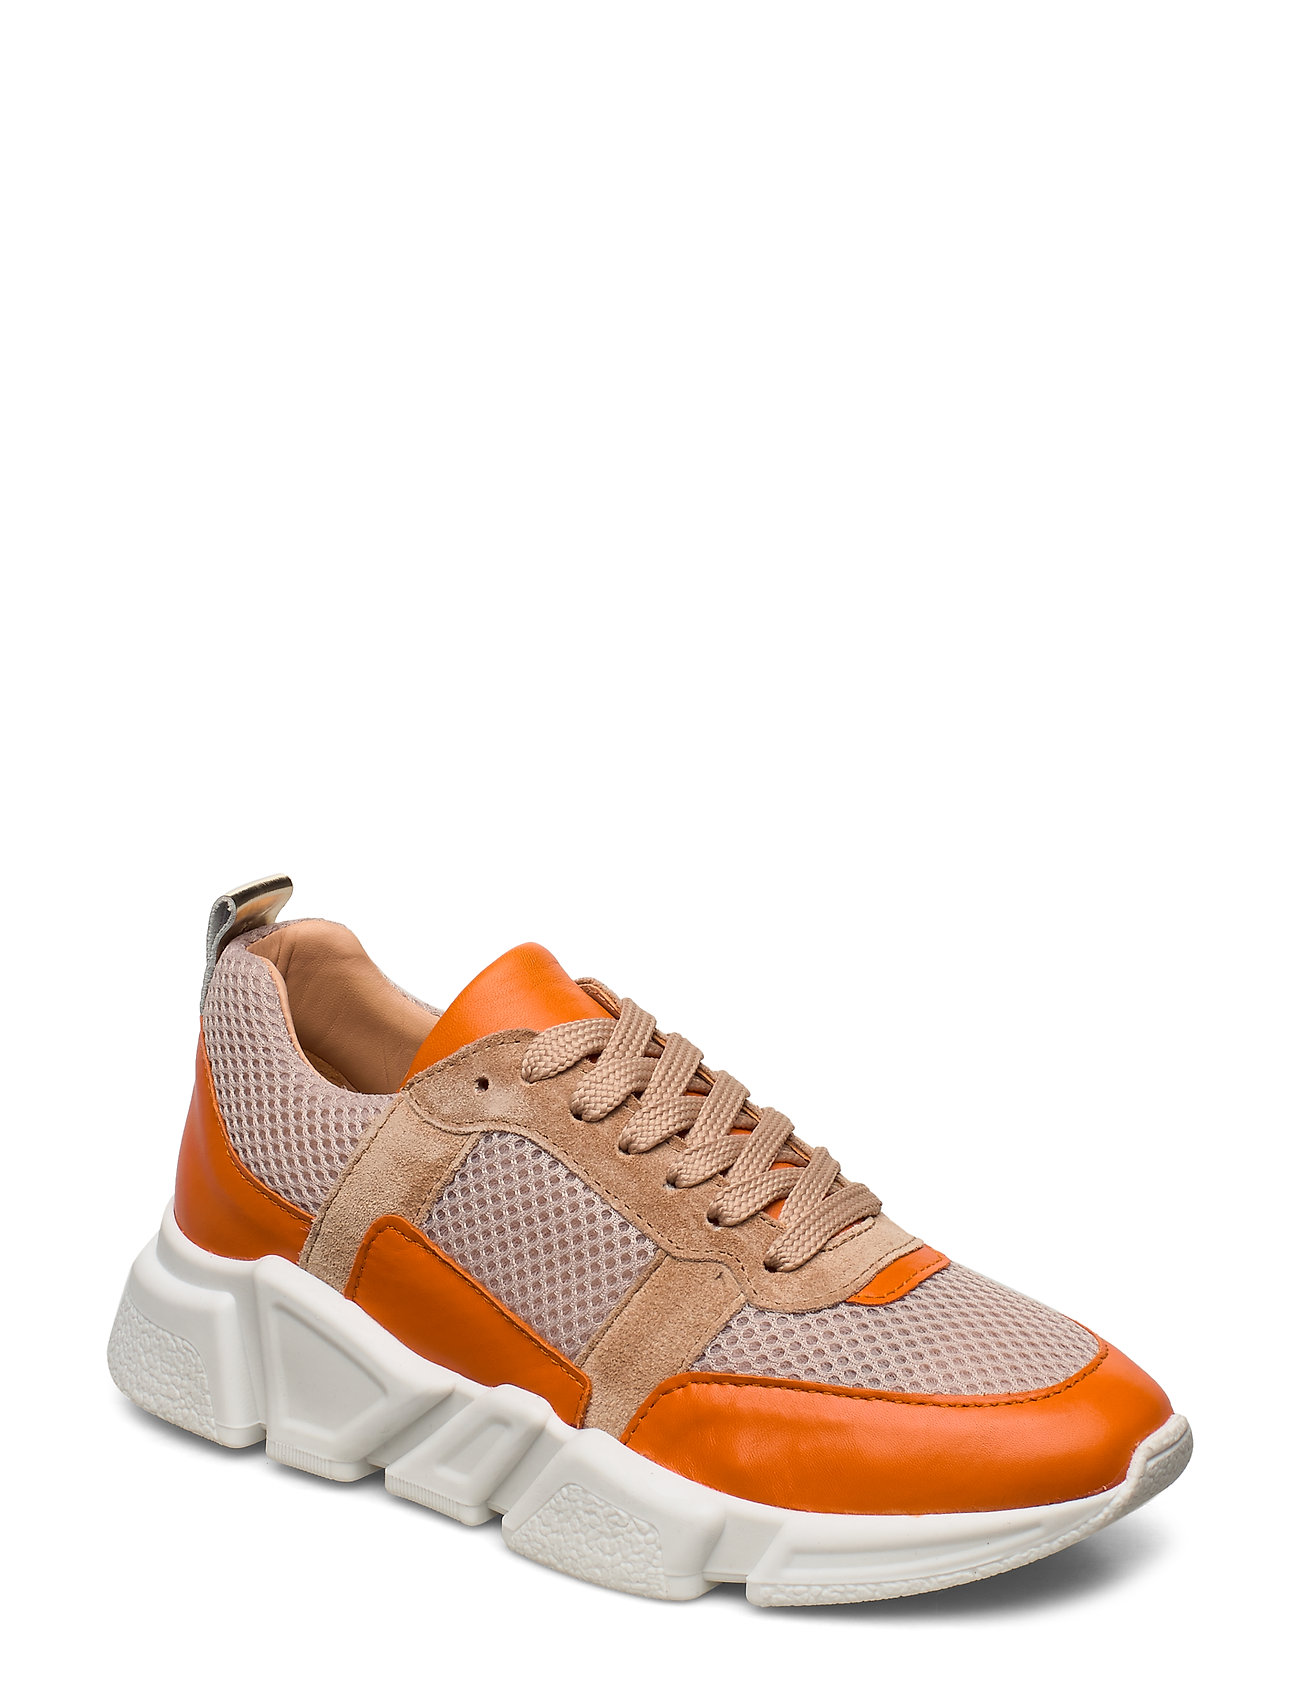 Billi Bi SHOES 8853 - ORANGE/BEIGE COMB.